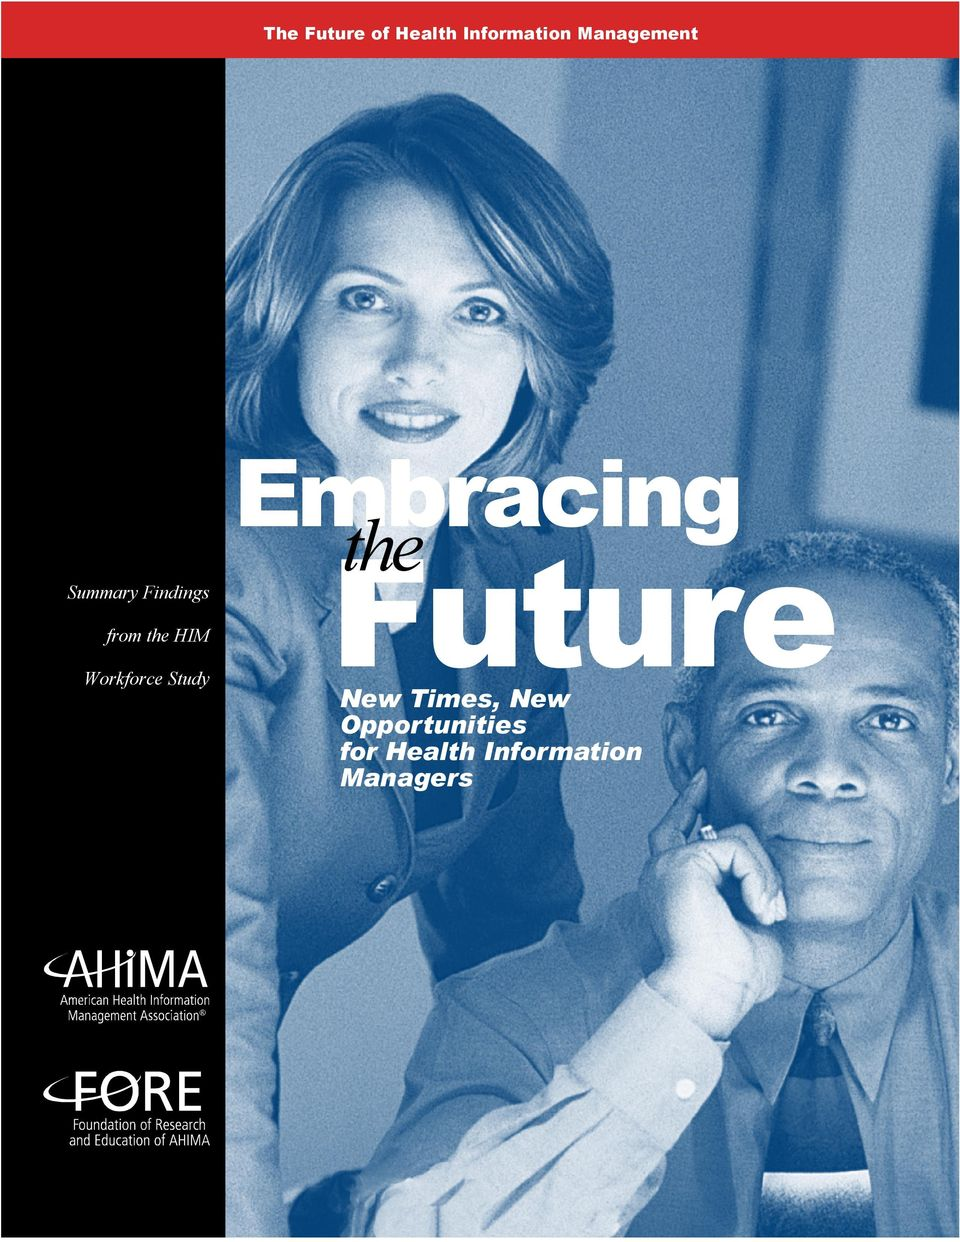 Workforce Study Embracing the Future New